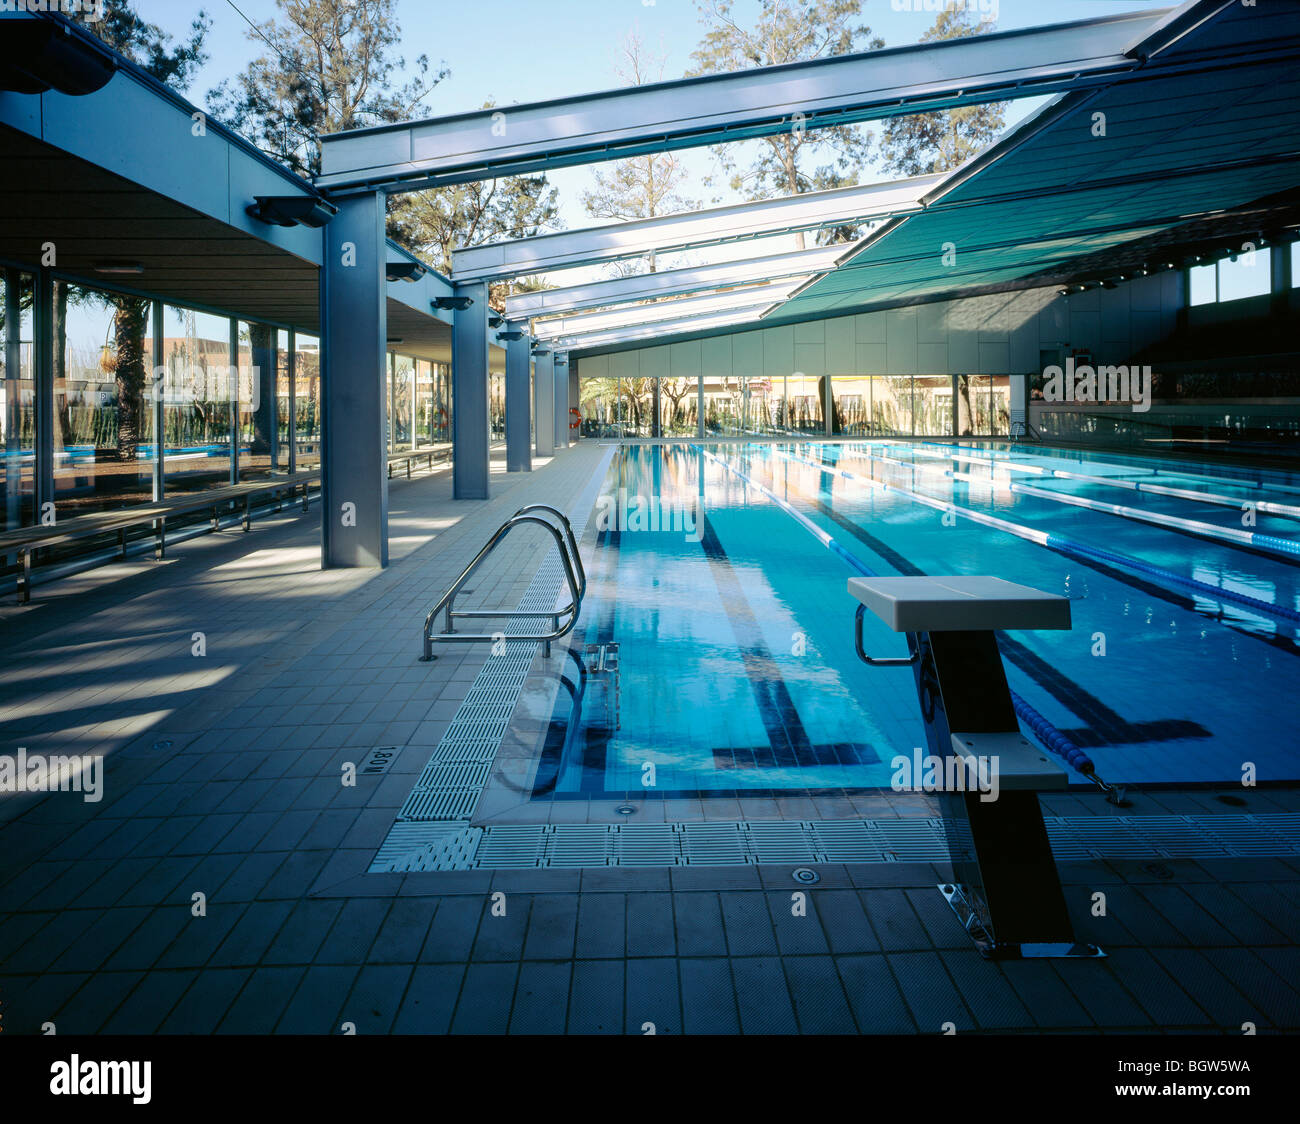 Piscina Fondo D 39 En Peixo Morning Interior View Of Swimming Pool Stock Photo Royalty Free Image